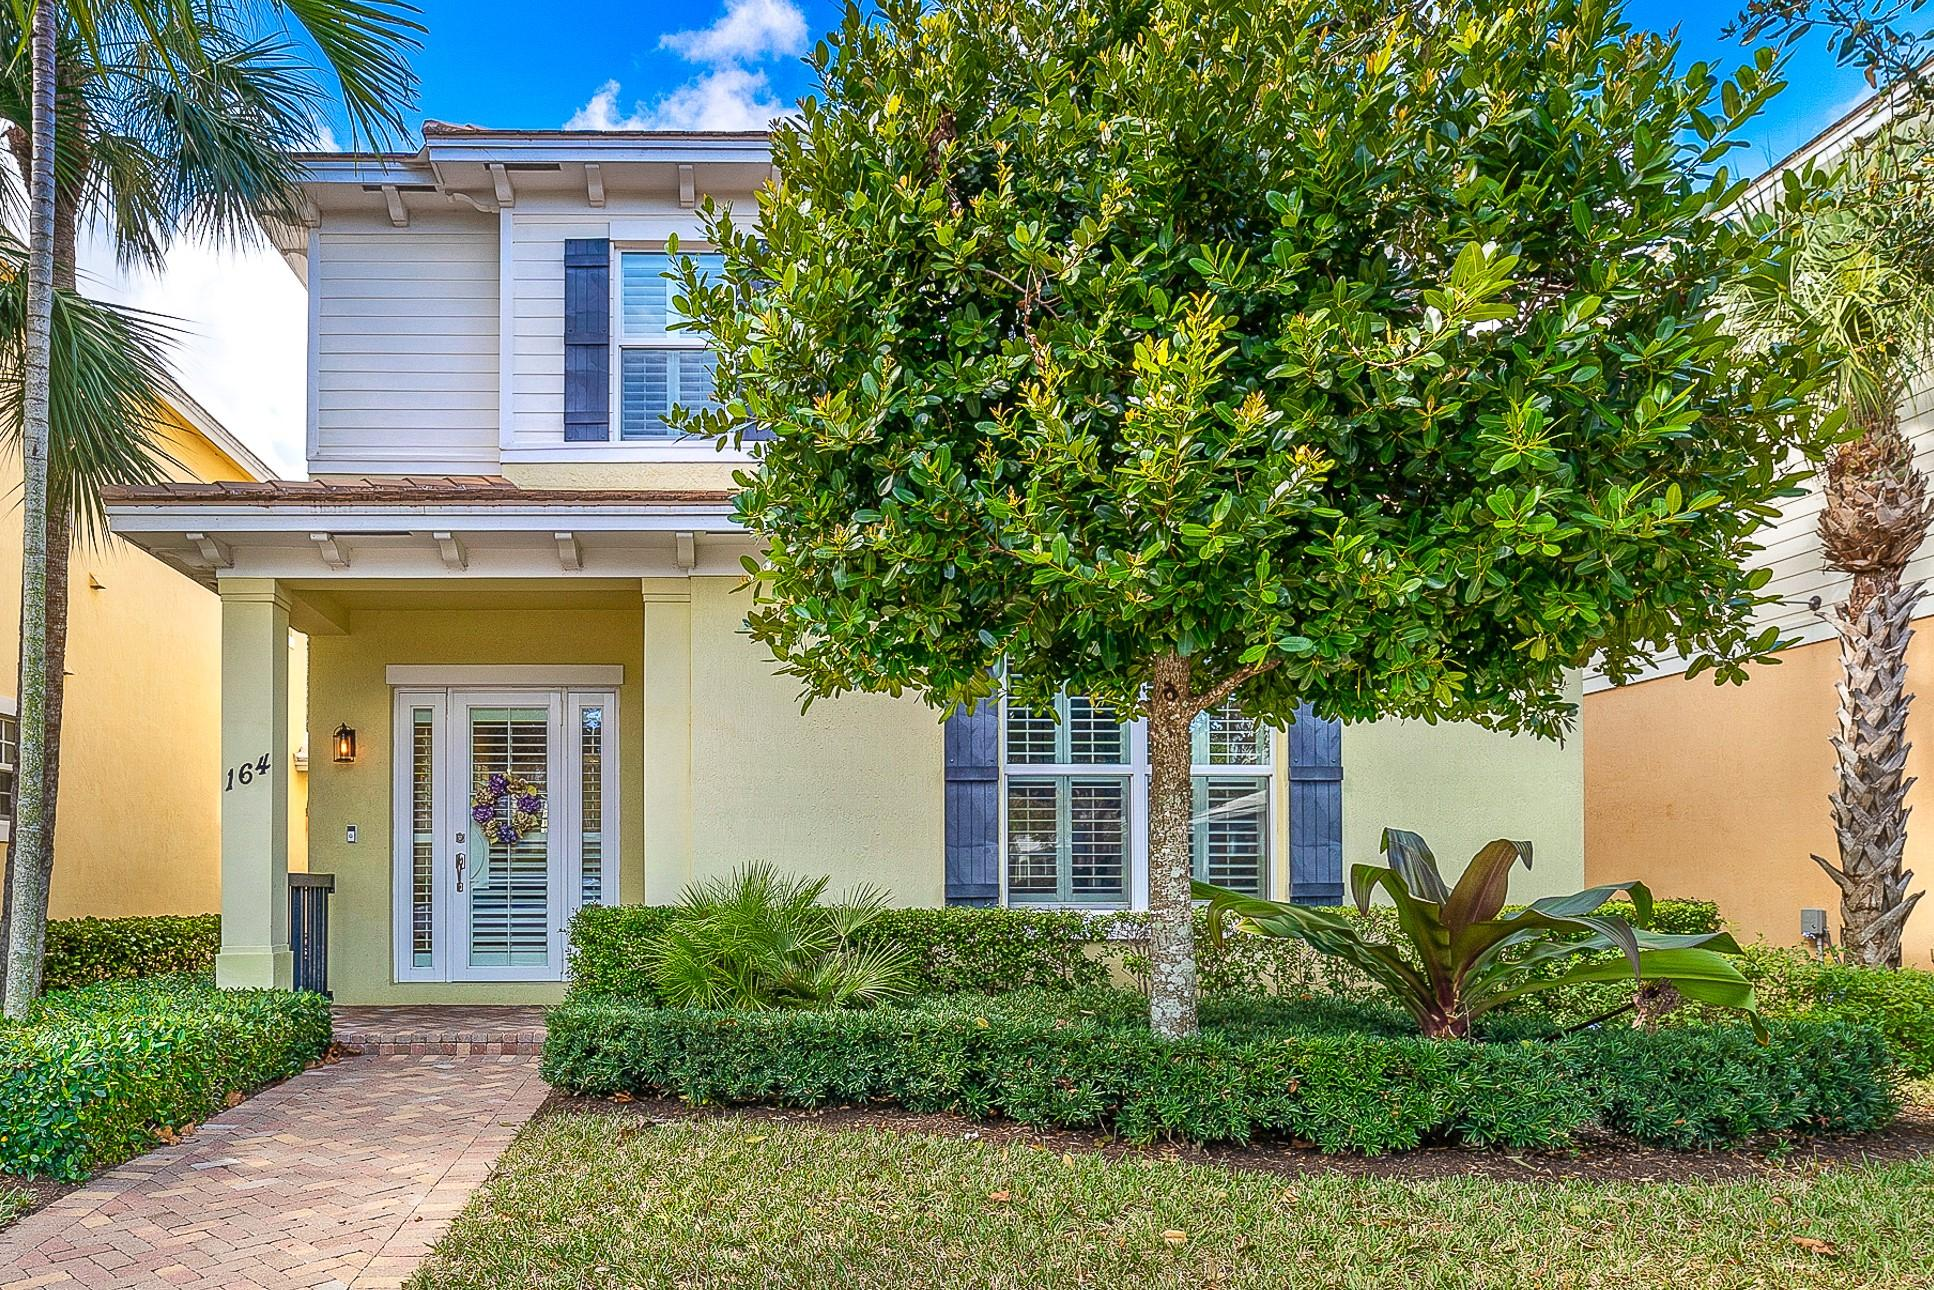 164 W Bay Cedar Circle - Jupiter, Florida